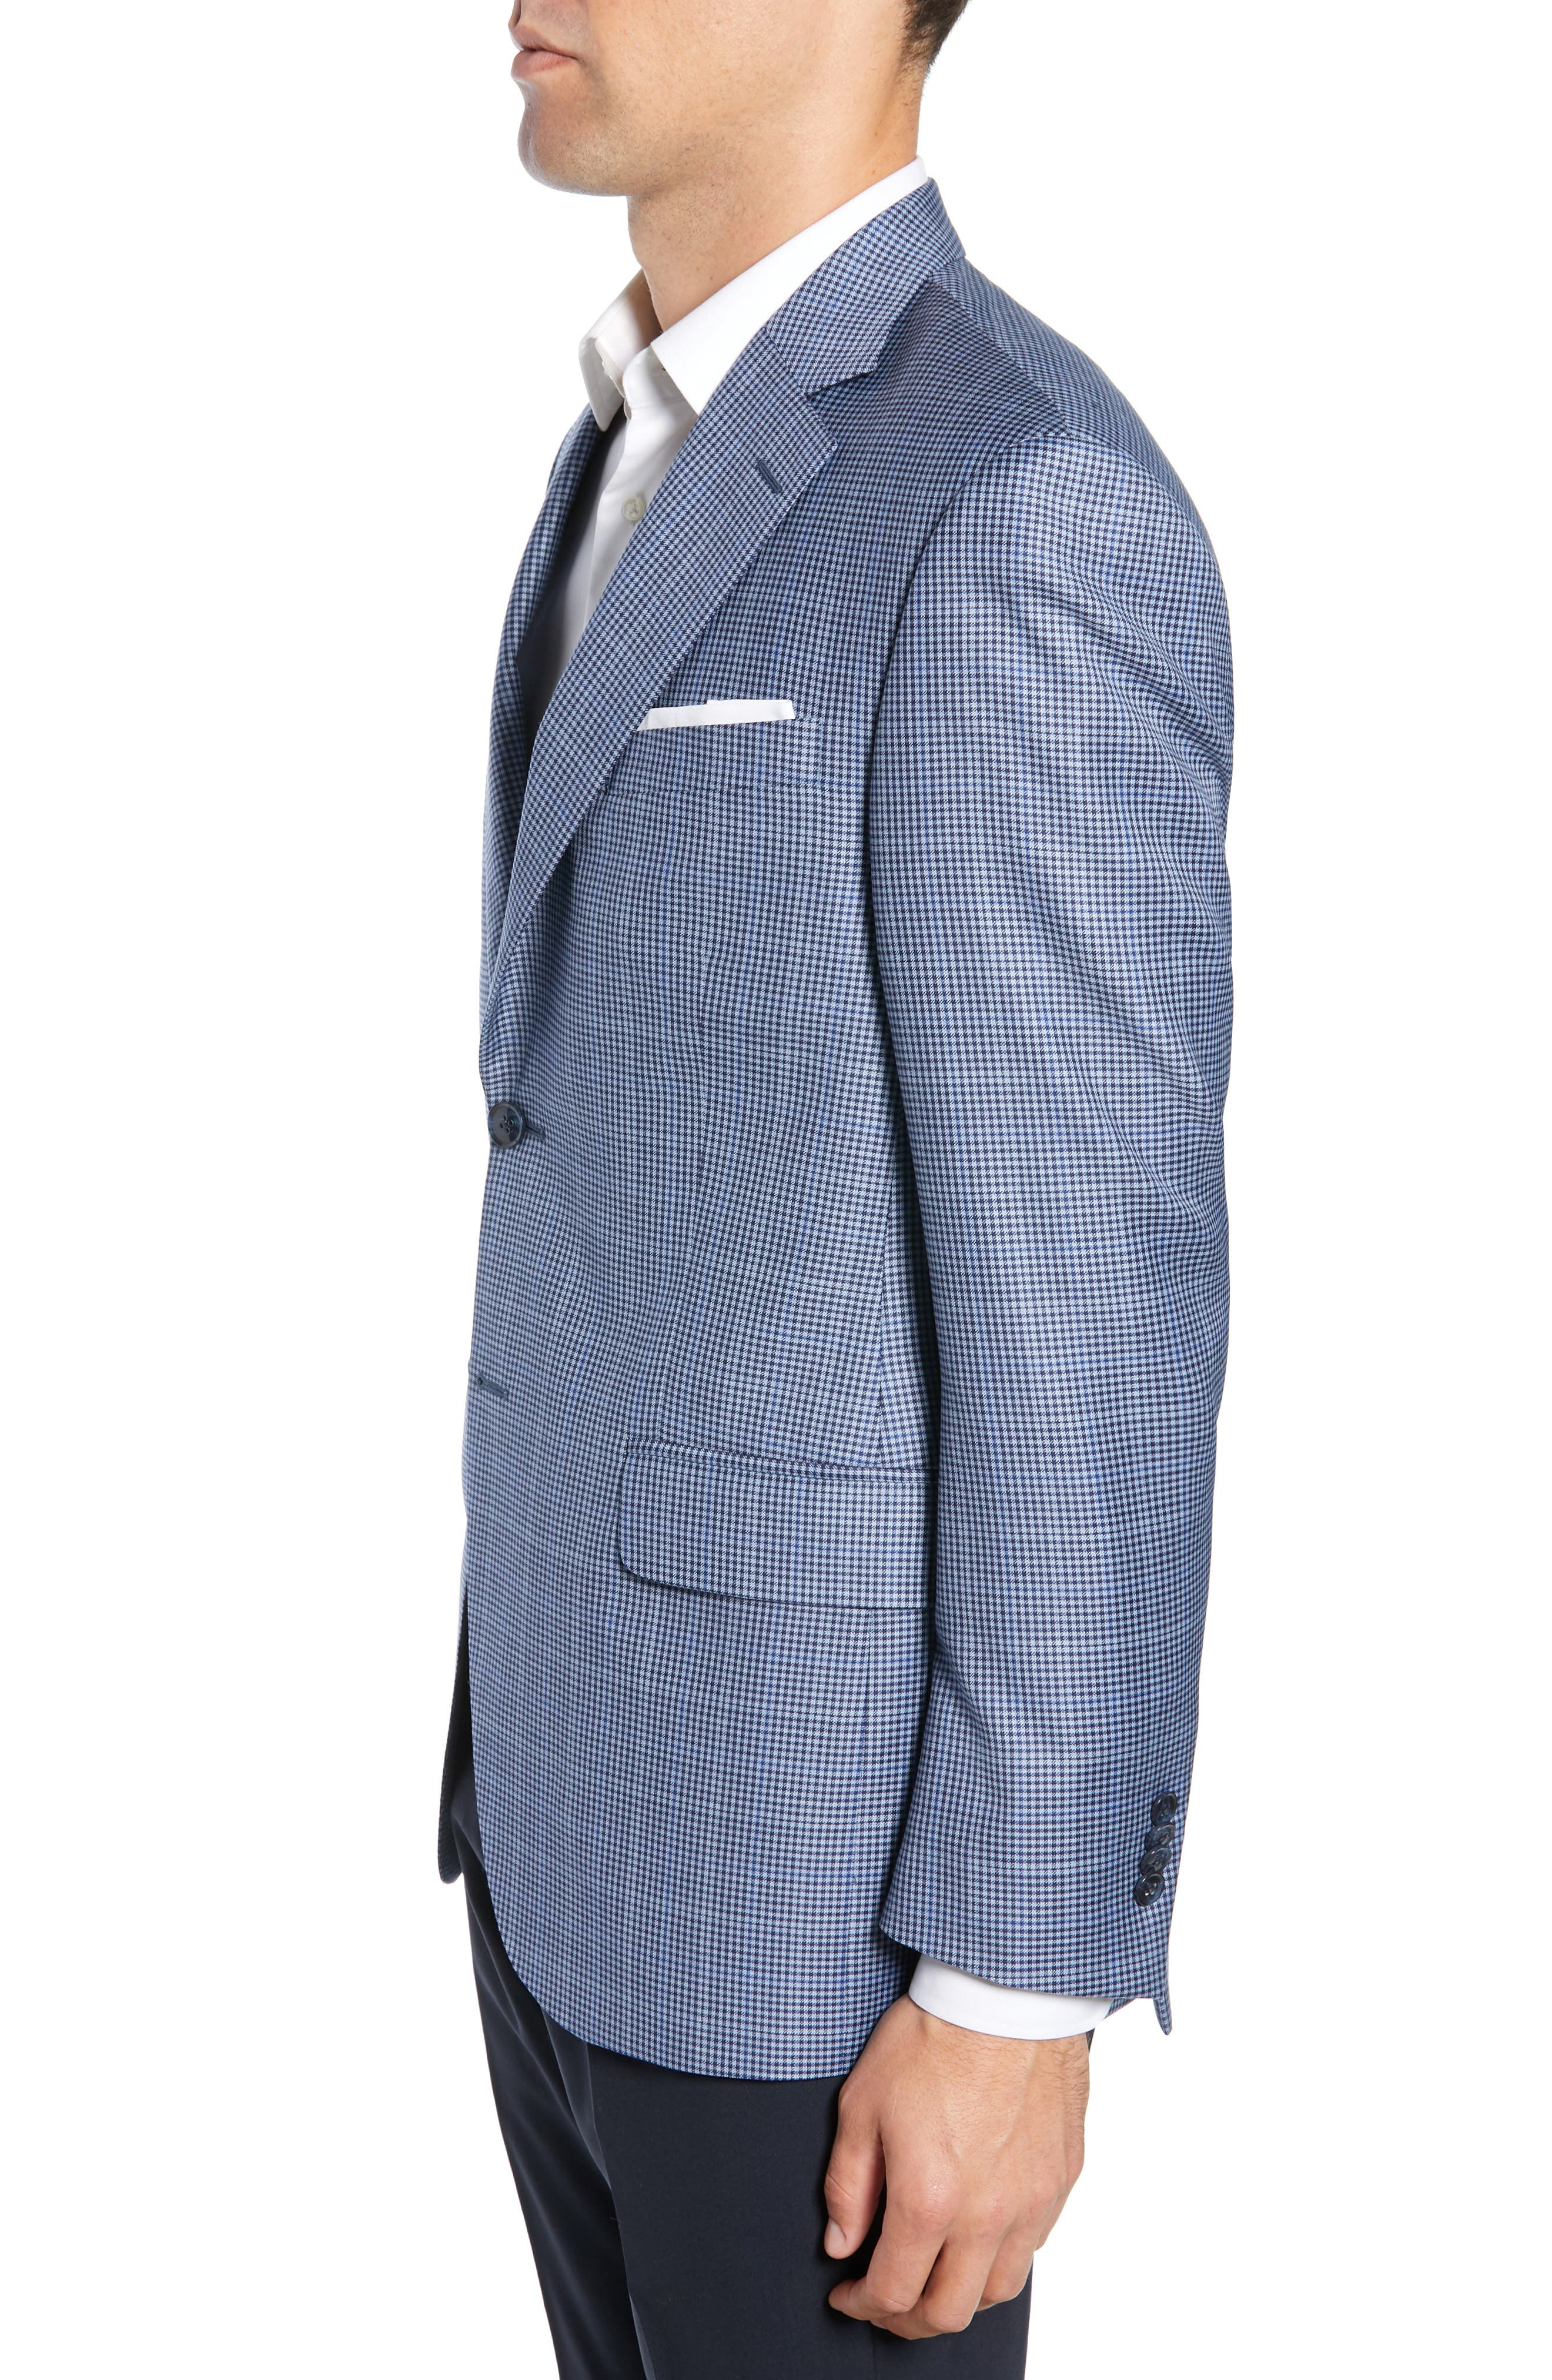 PETER MILLAR, Classic Fit Houndstooth Sport Coat, Alternate thumbnail 3, color, LIGHT BLUE